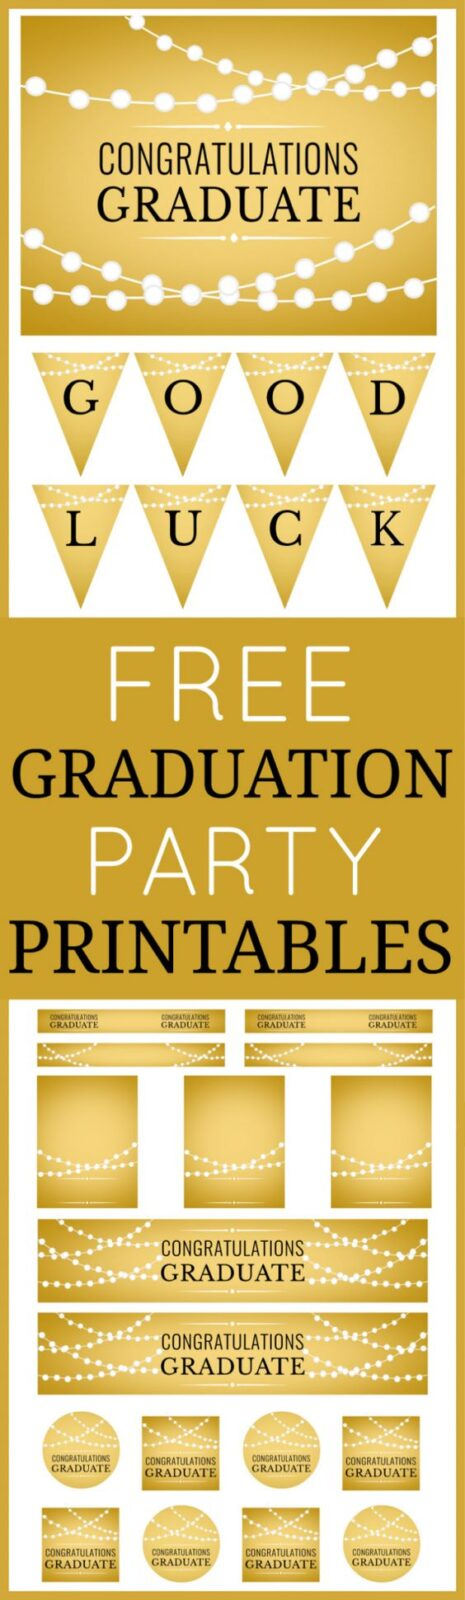 Gold free graduation party printables by Printabelle via Catch My Party